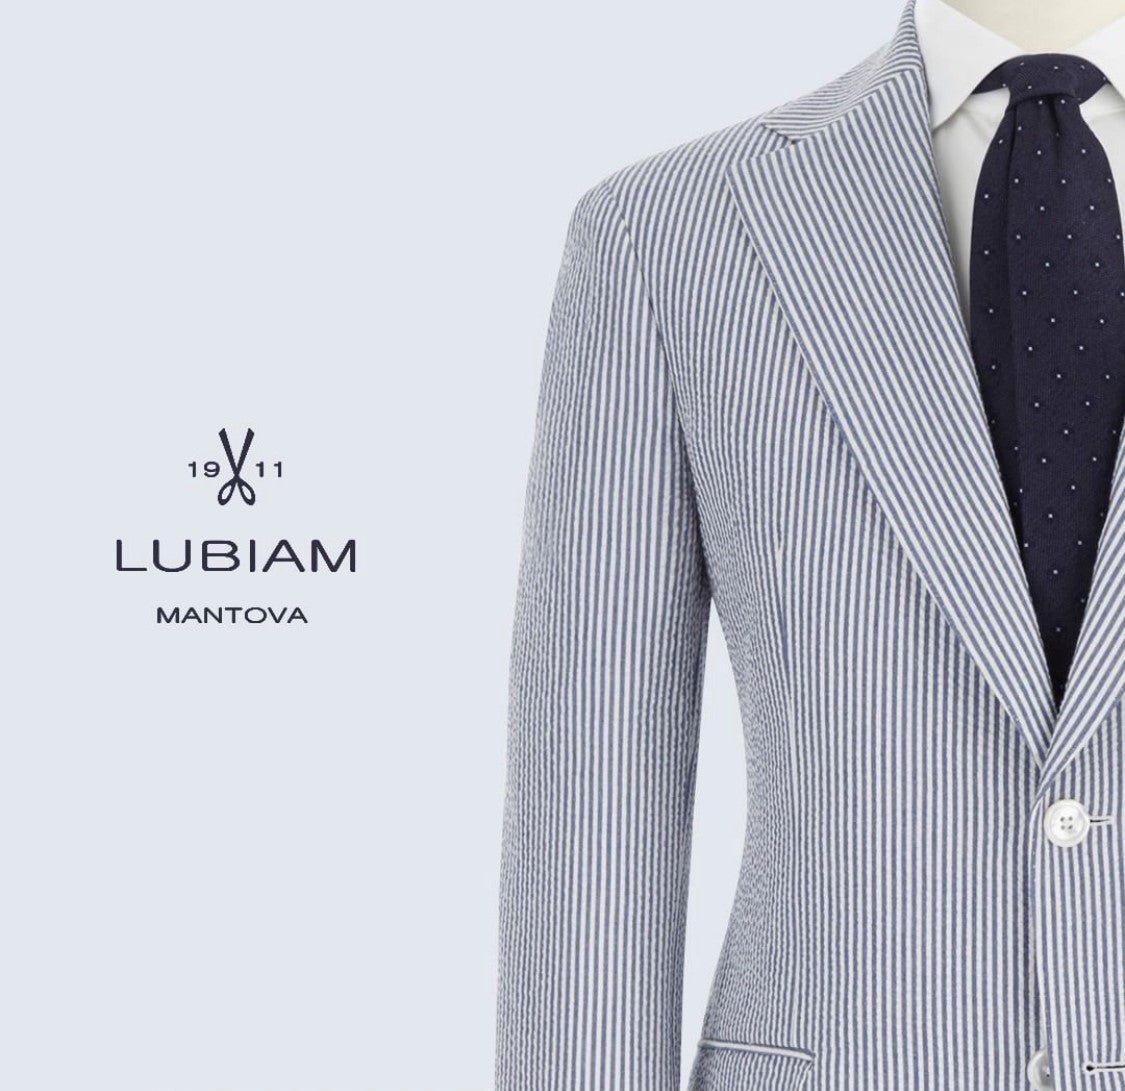 Luigi Bianchi Mantova Made-to-measure suit. Laurus LuxeCotton  Kollektionen (medlemspris 8.100,-)